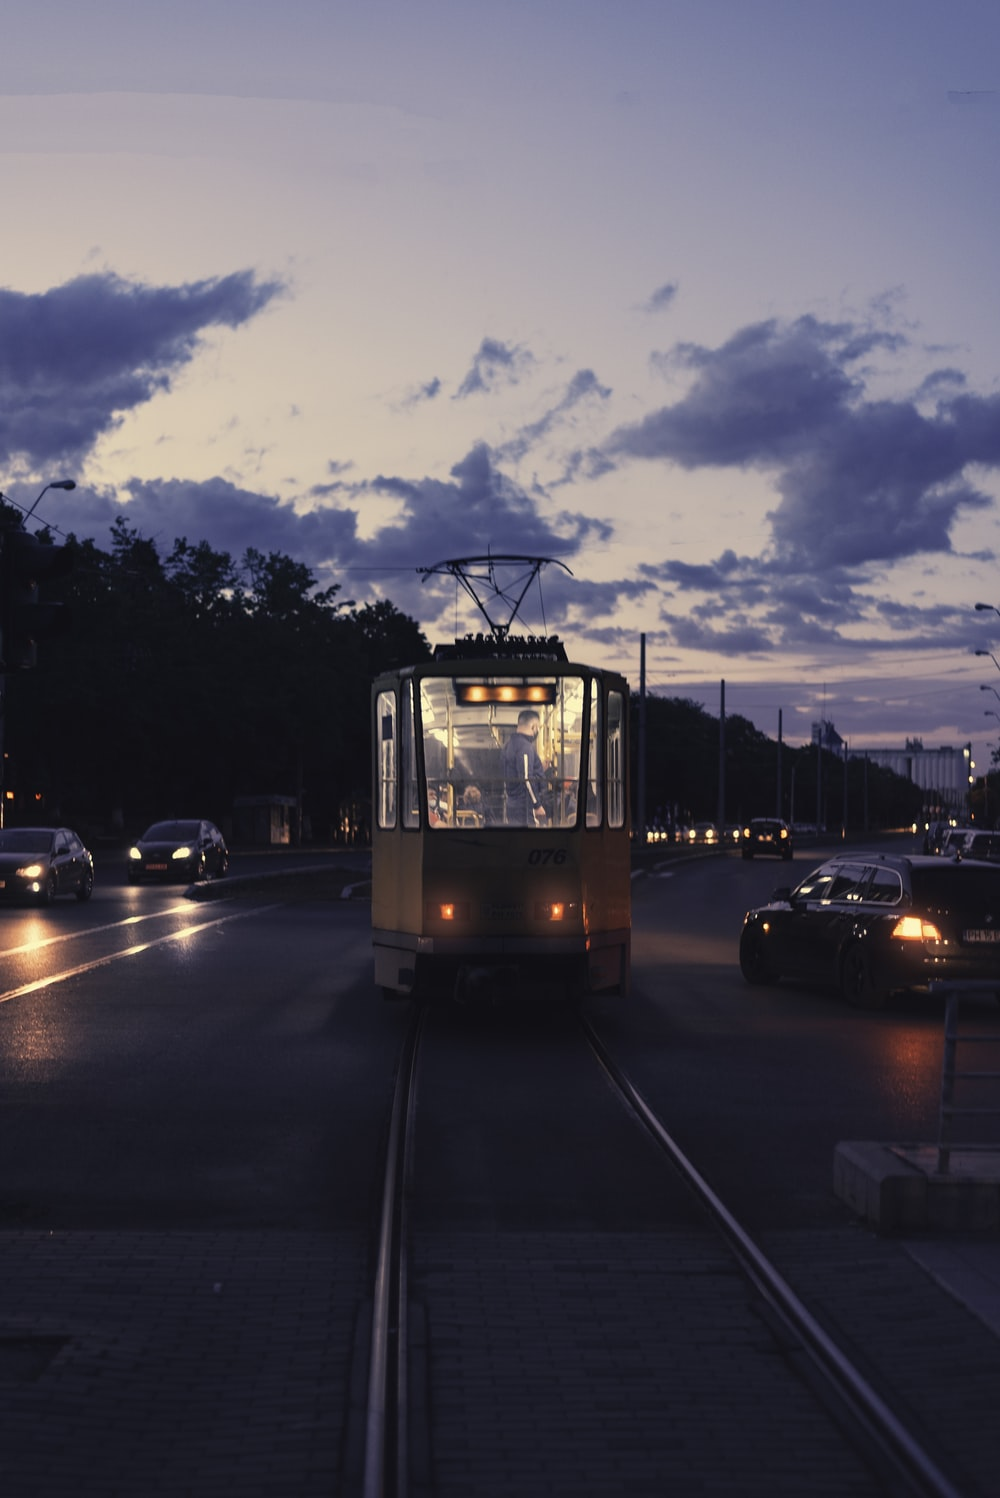 white and black tram on road during daytime